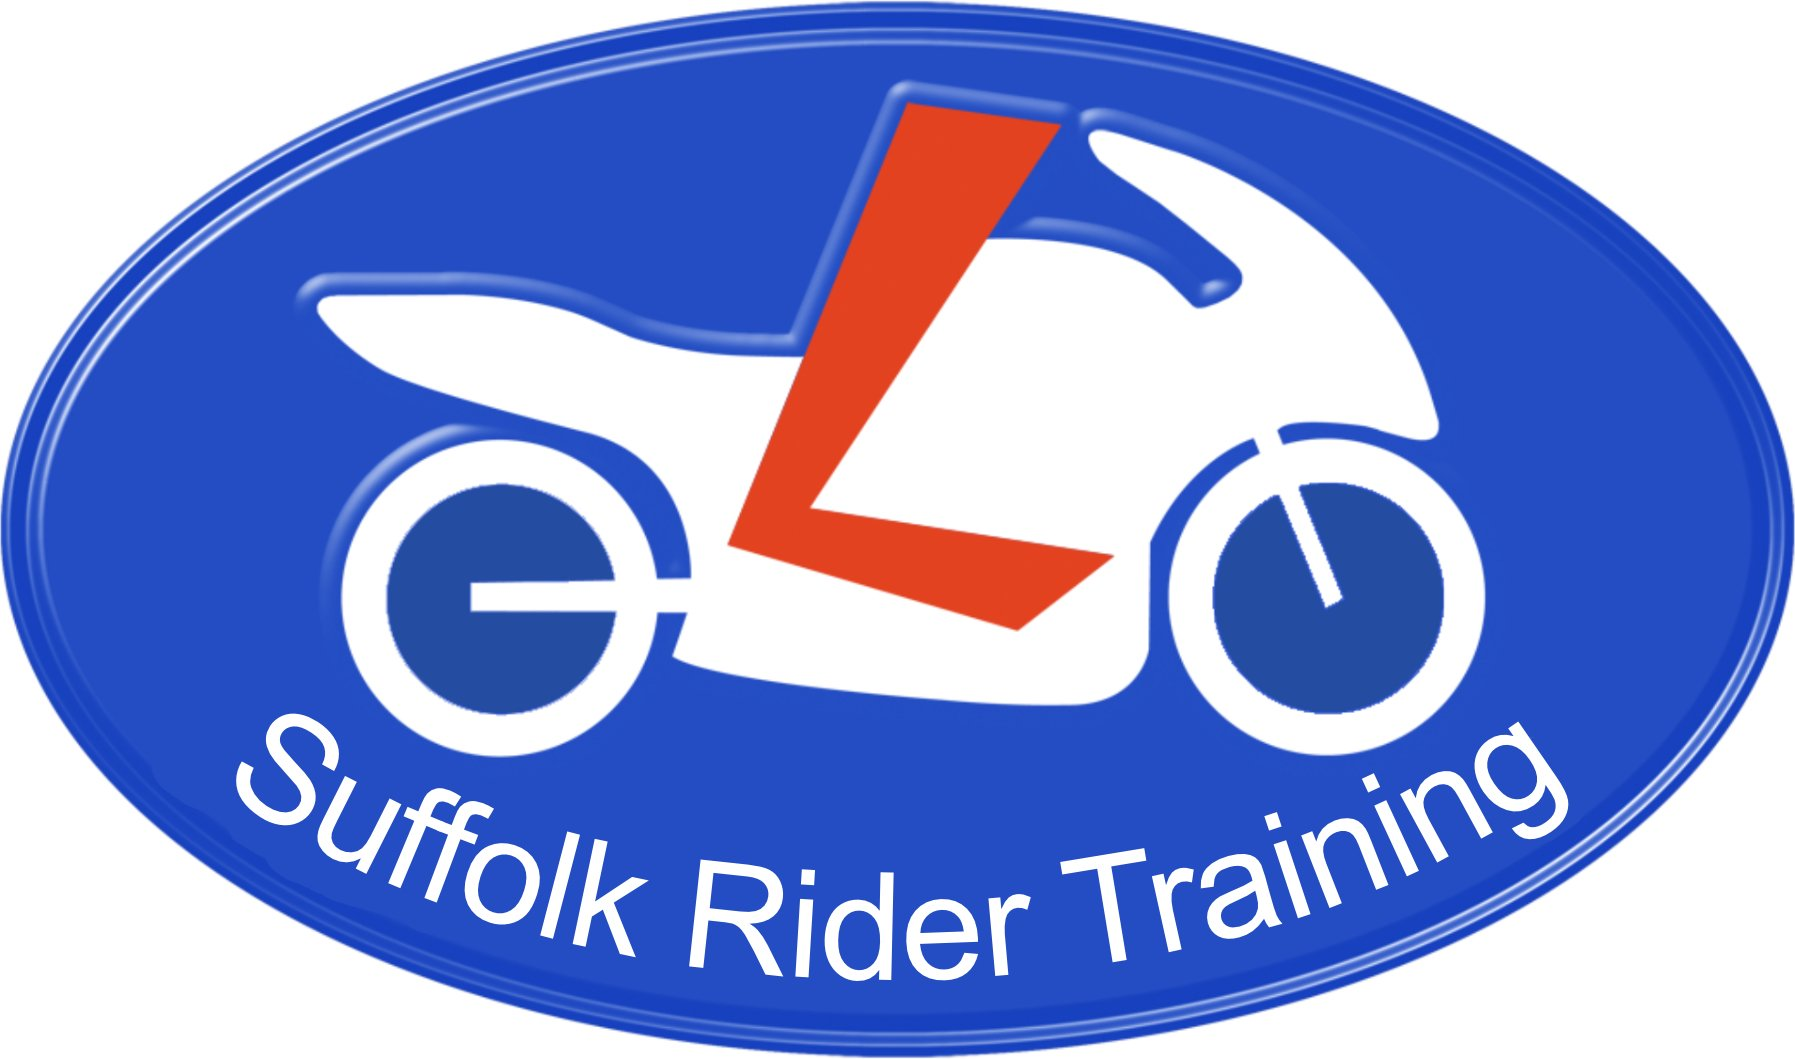 Suffolk Rider Training in Ipswich